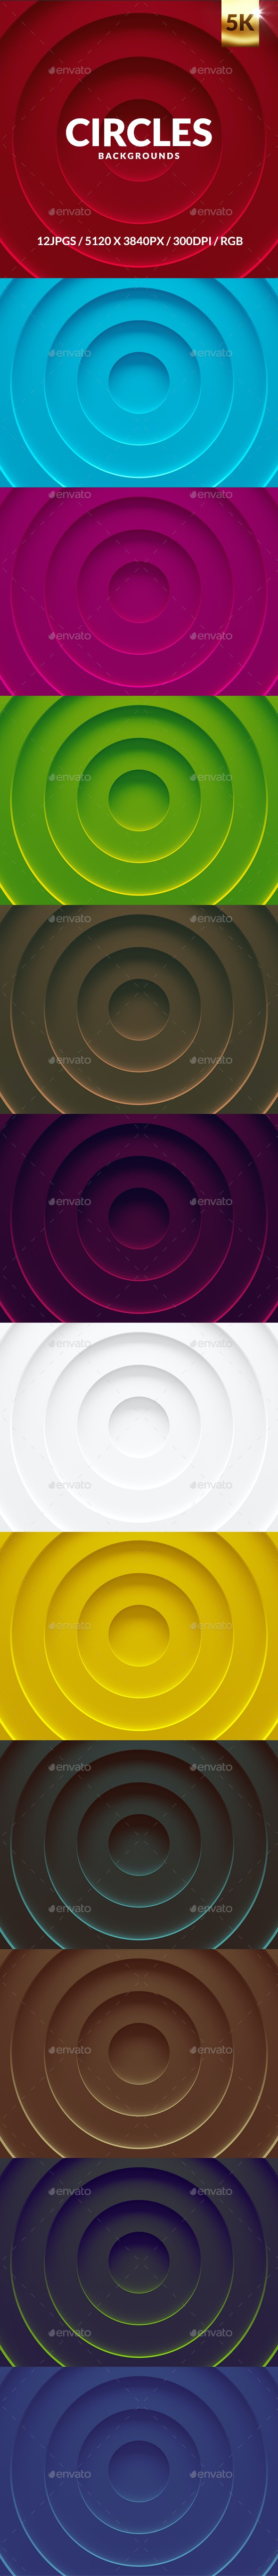 Circles Background - Backgrounds Graphics